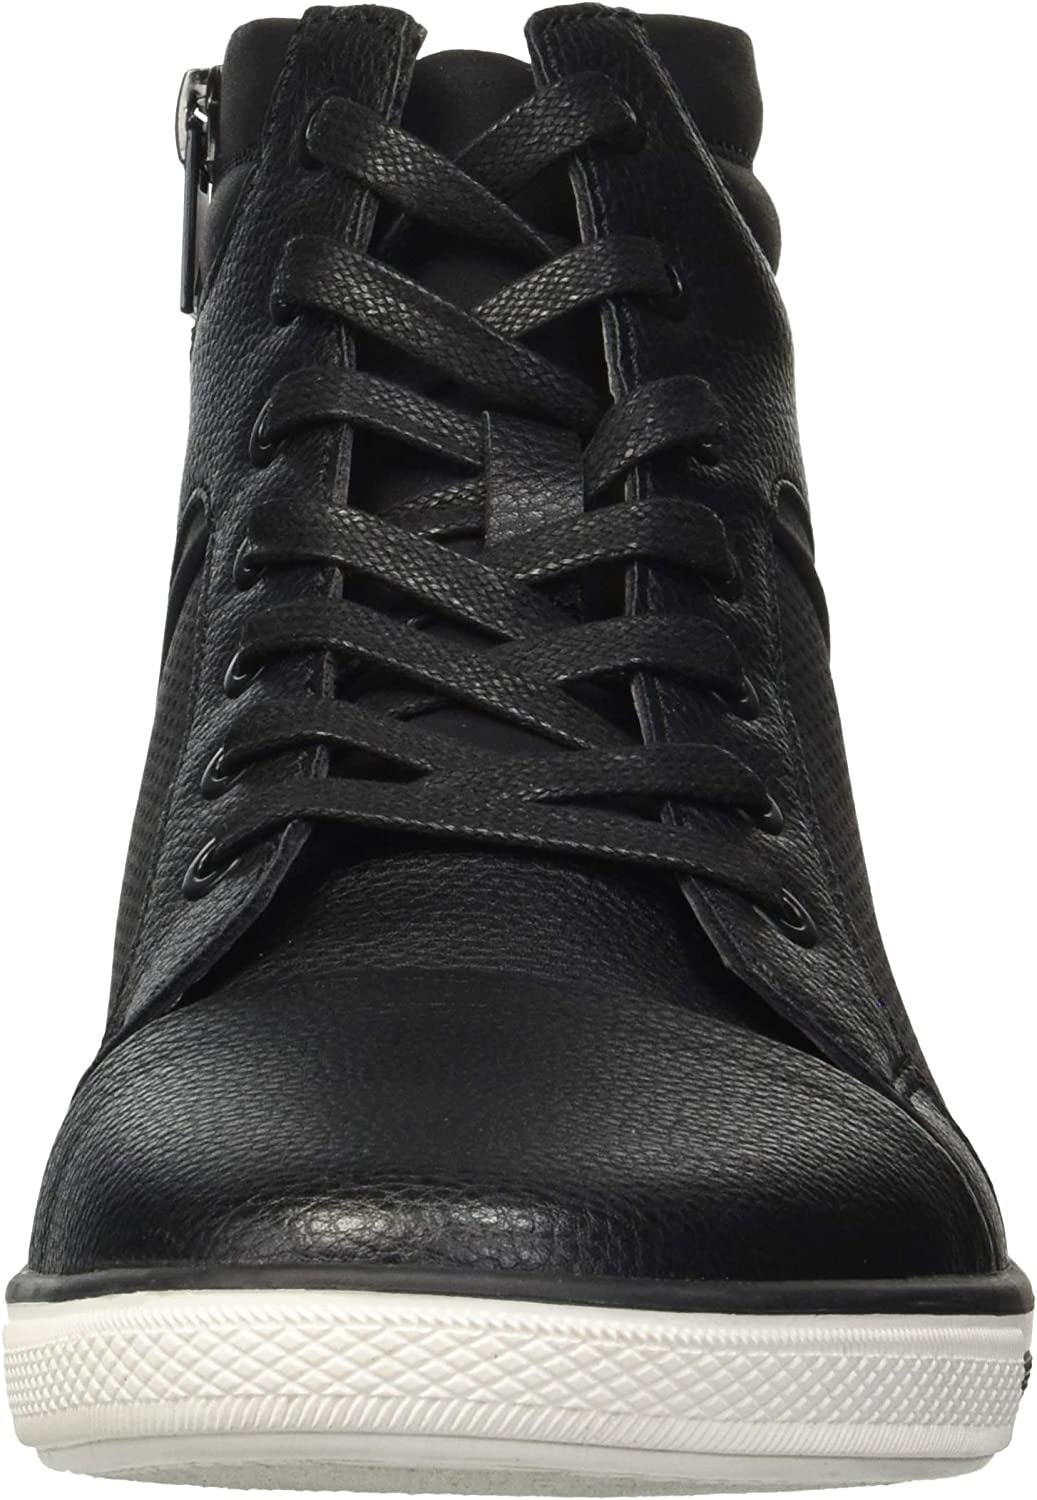 Wholesale Unlisted by Kenneth Cole Men's Crown Worthy Sneaker Black Combo jd29zh